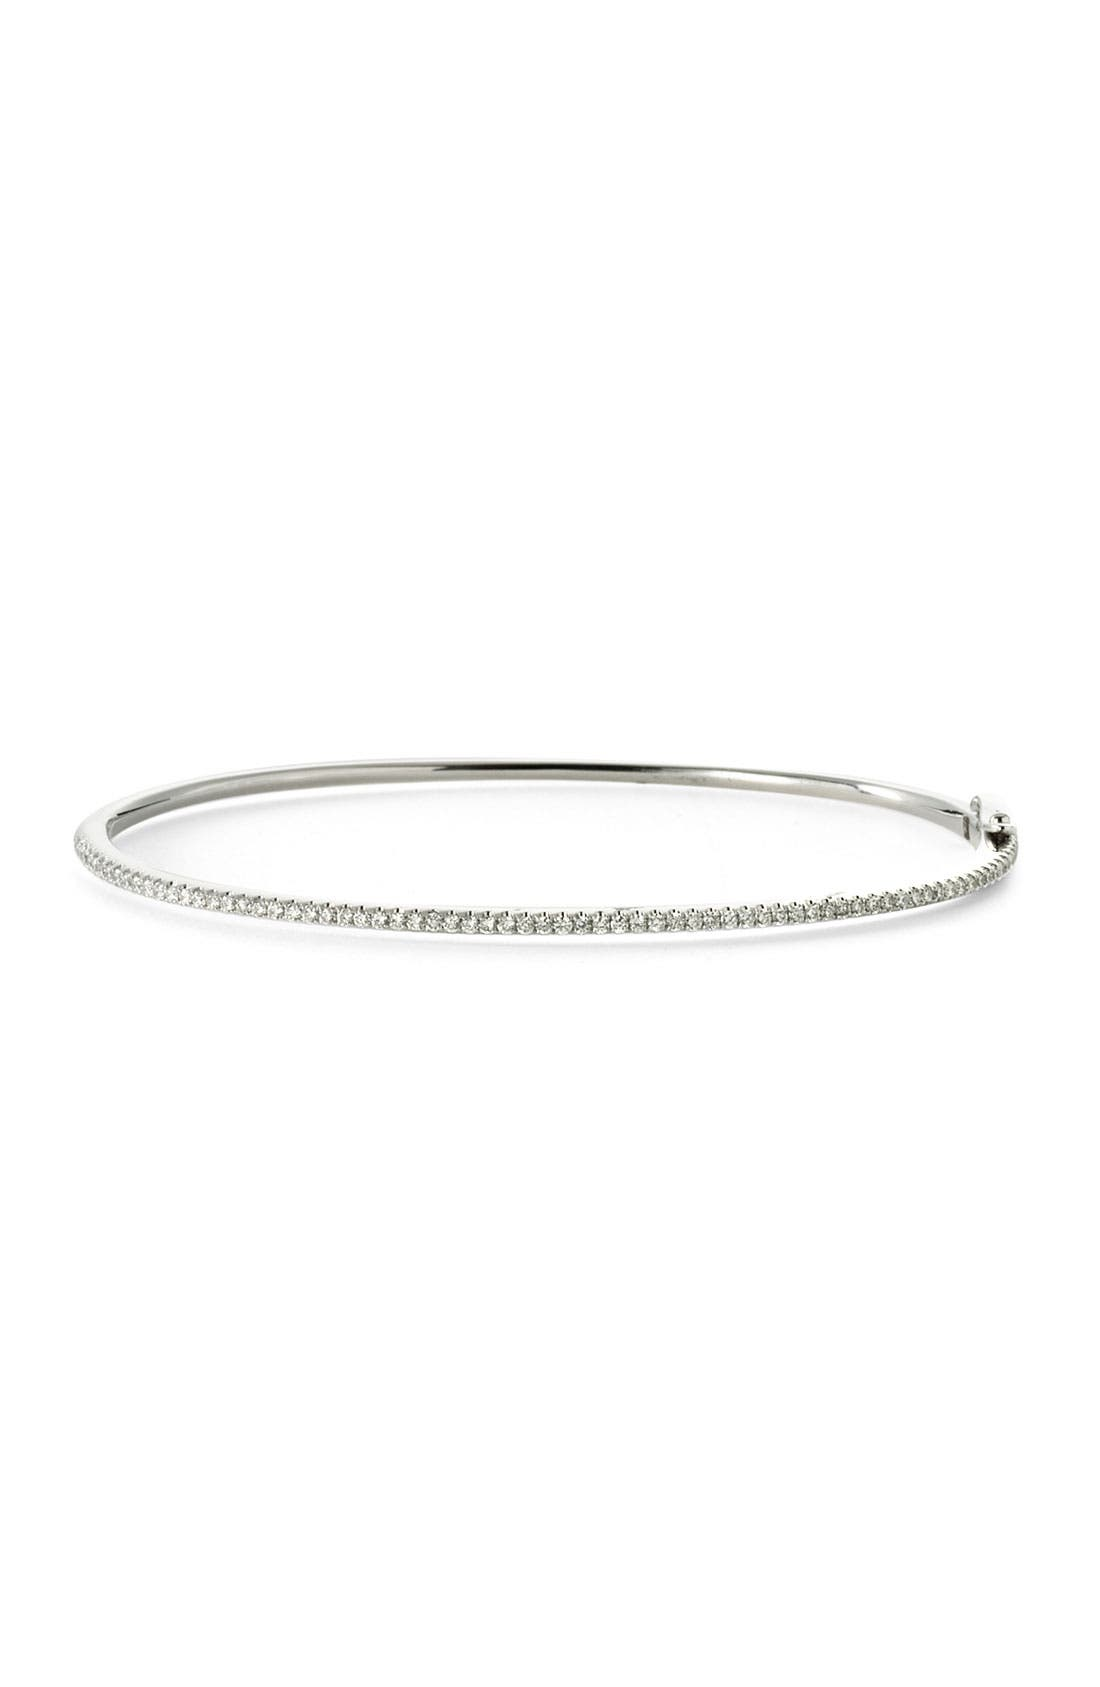 Alternate Image 1 Selected - Bony Levy Skinny Stackable Diamond Bangle (Nordstrom Exclusive)